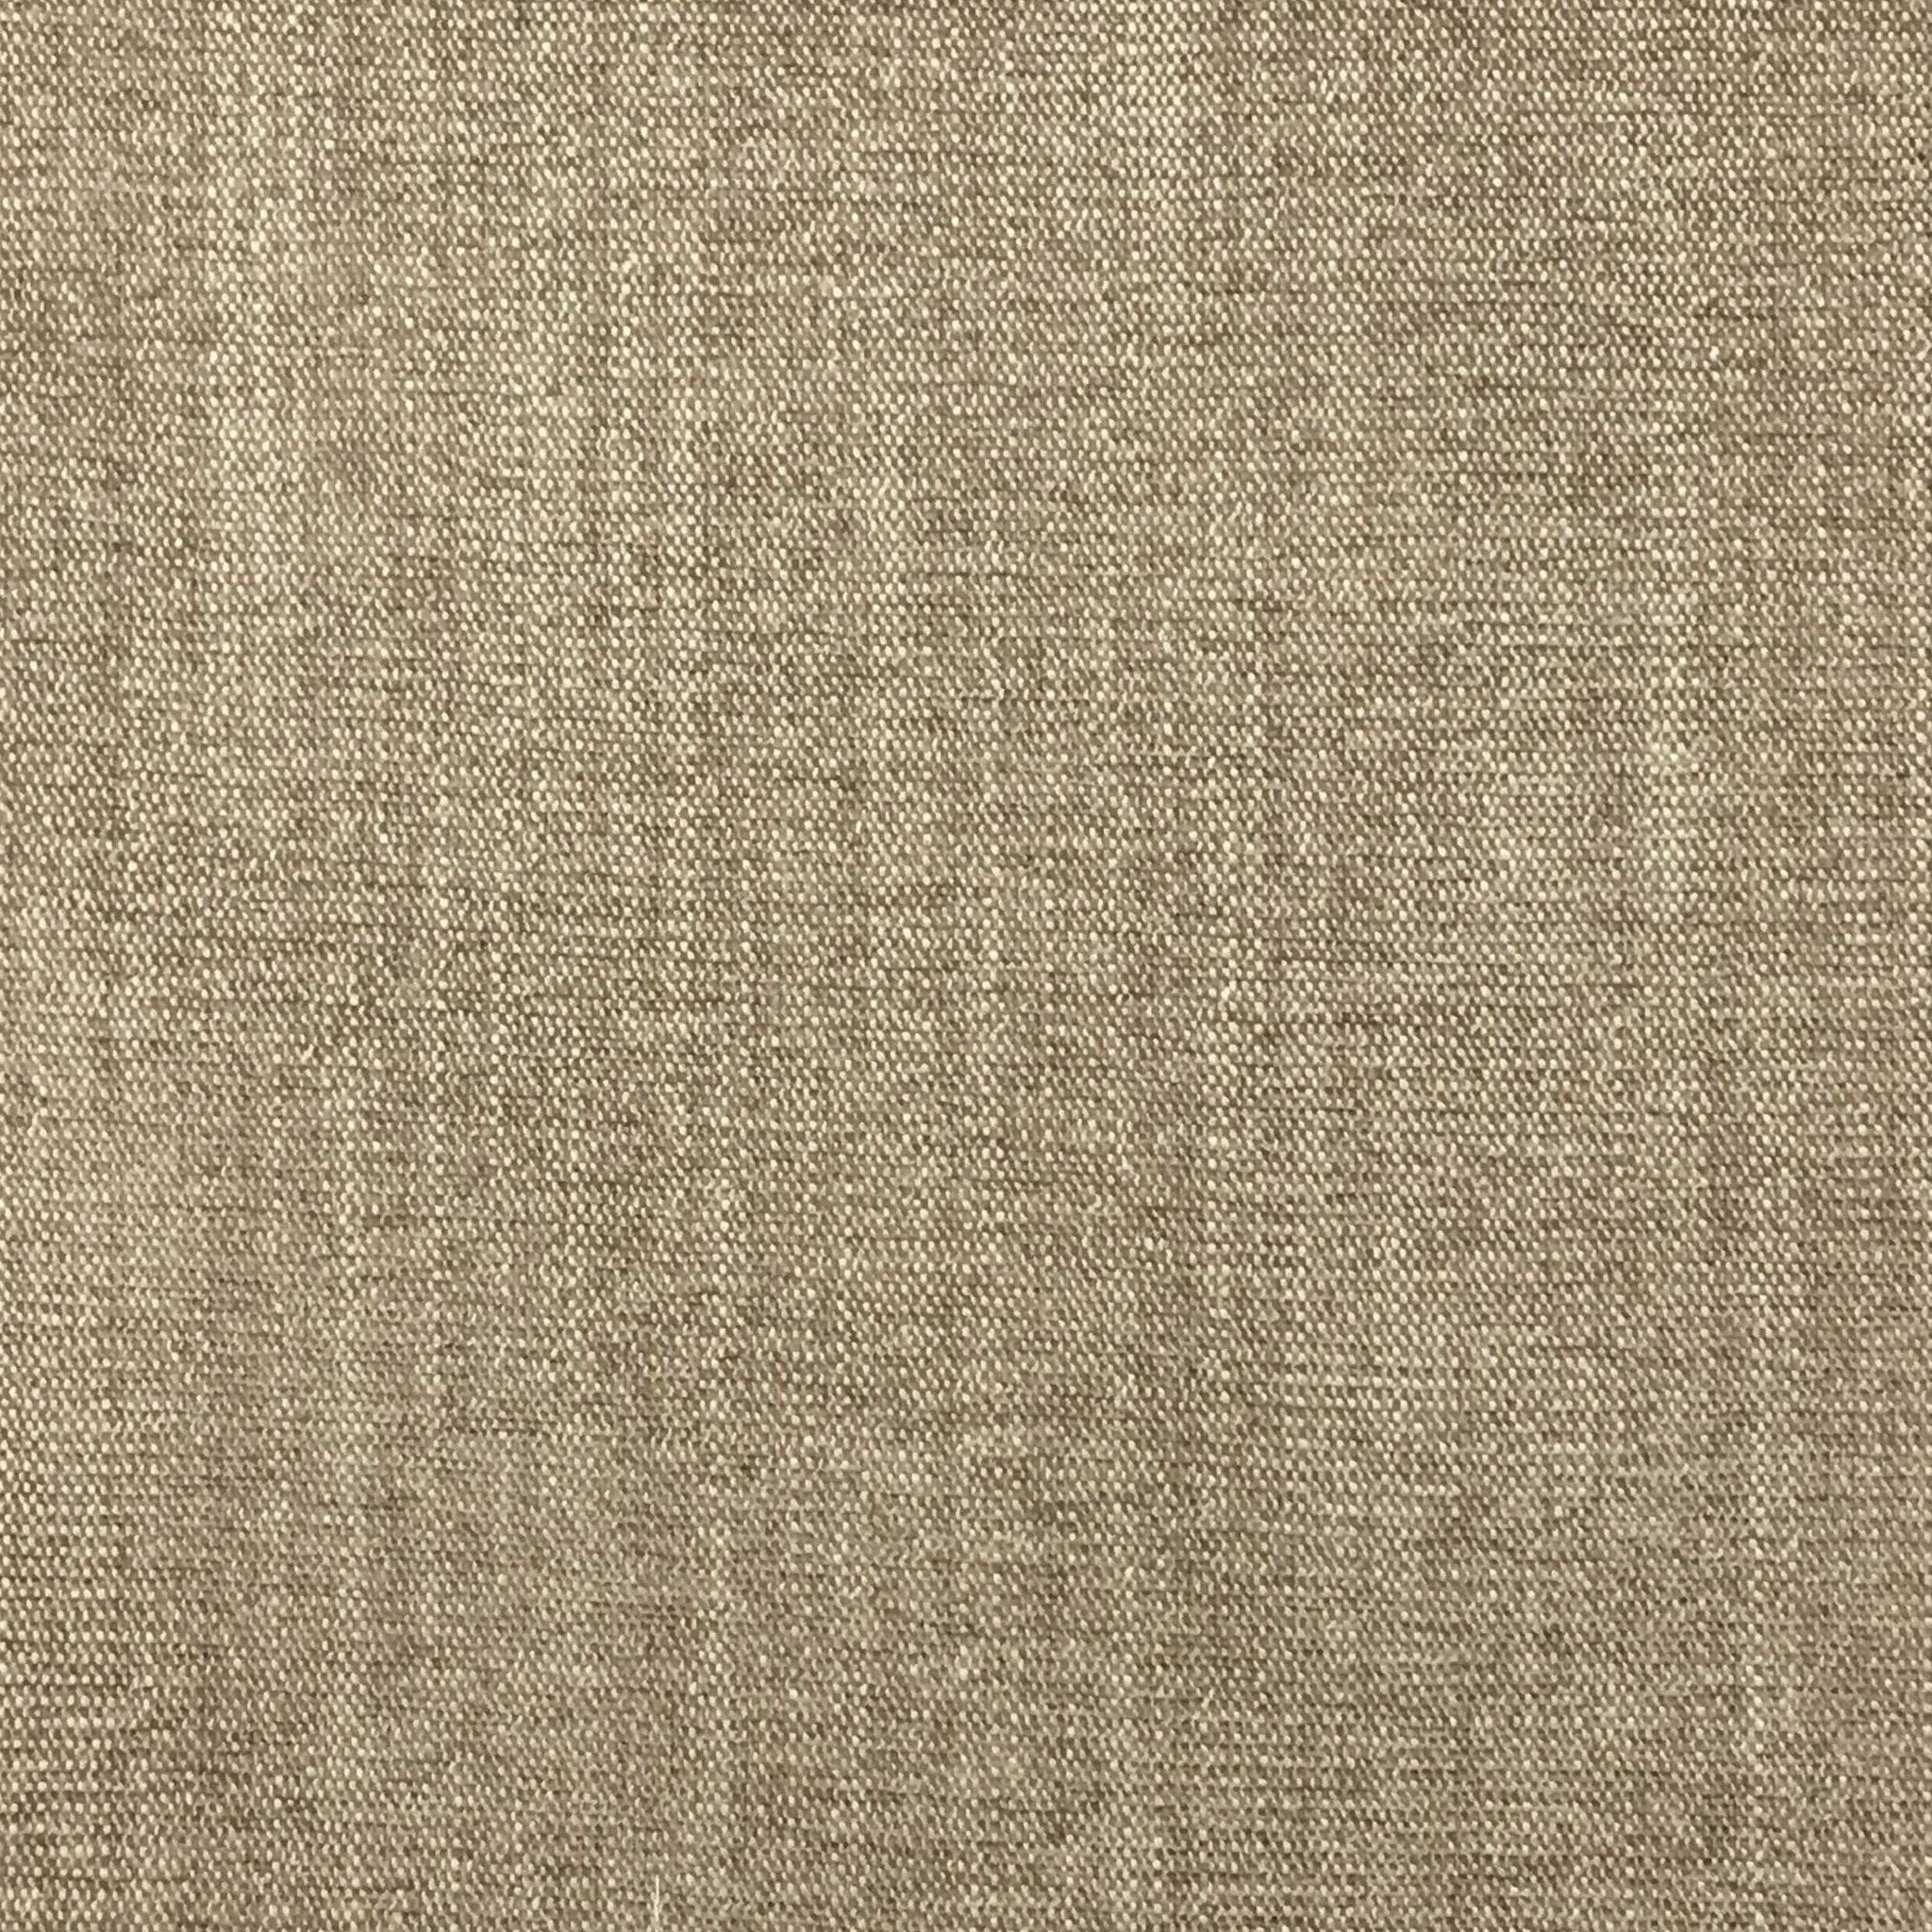 bronson linen blend textured chenille upholstery fabric by the yard. Black Bedroom Furniture Sets. Home Design Ideas